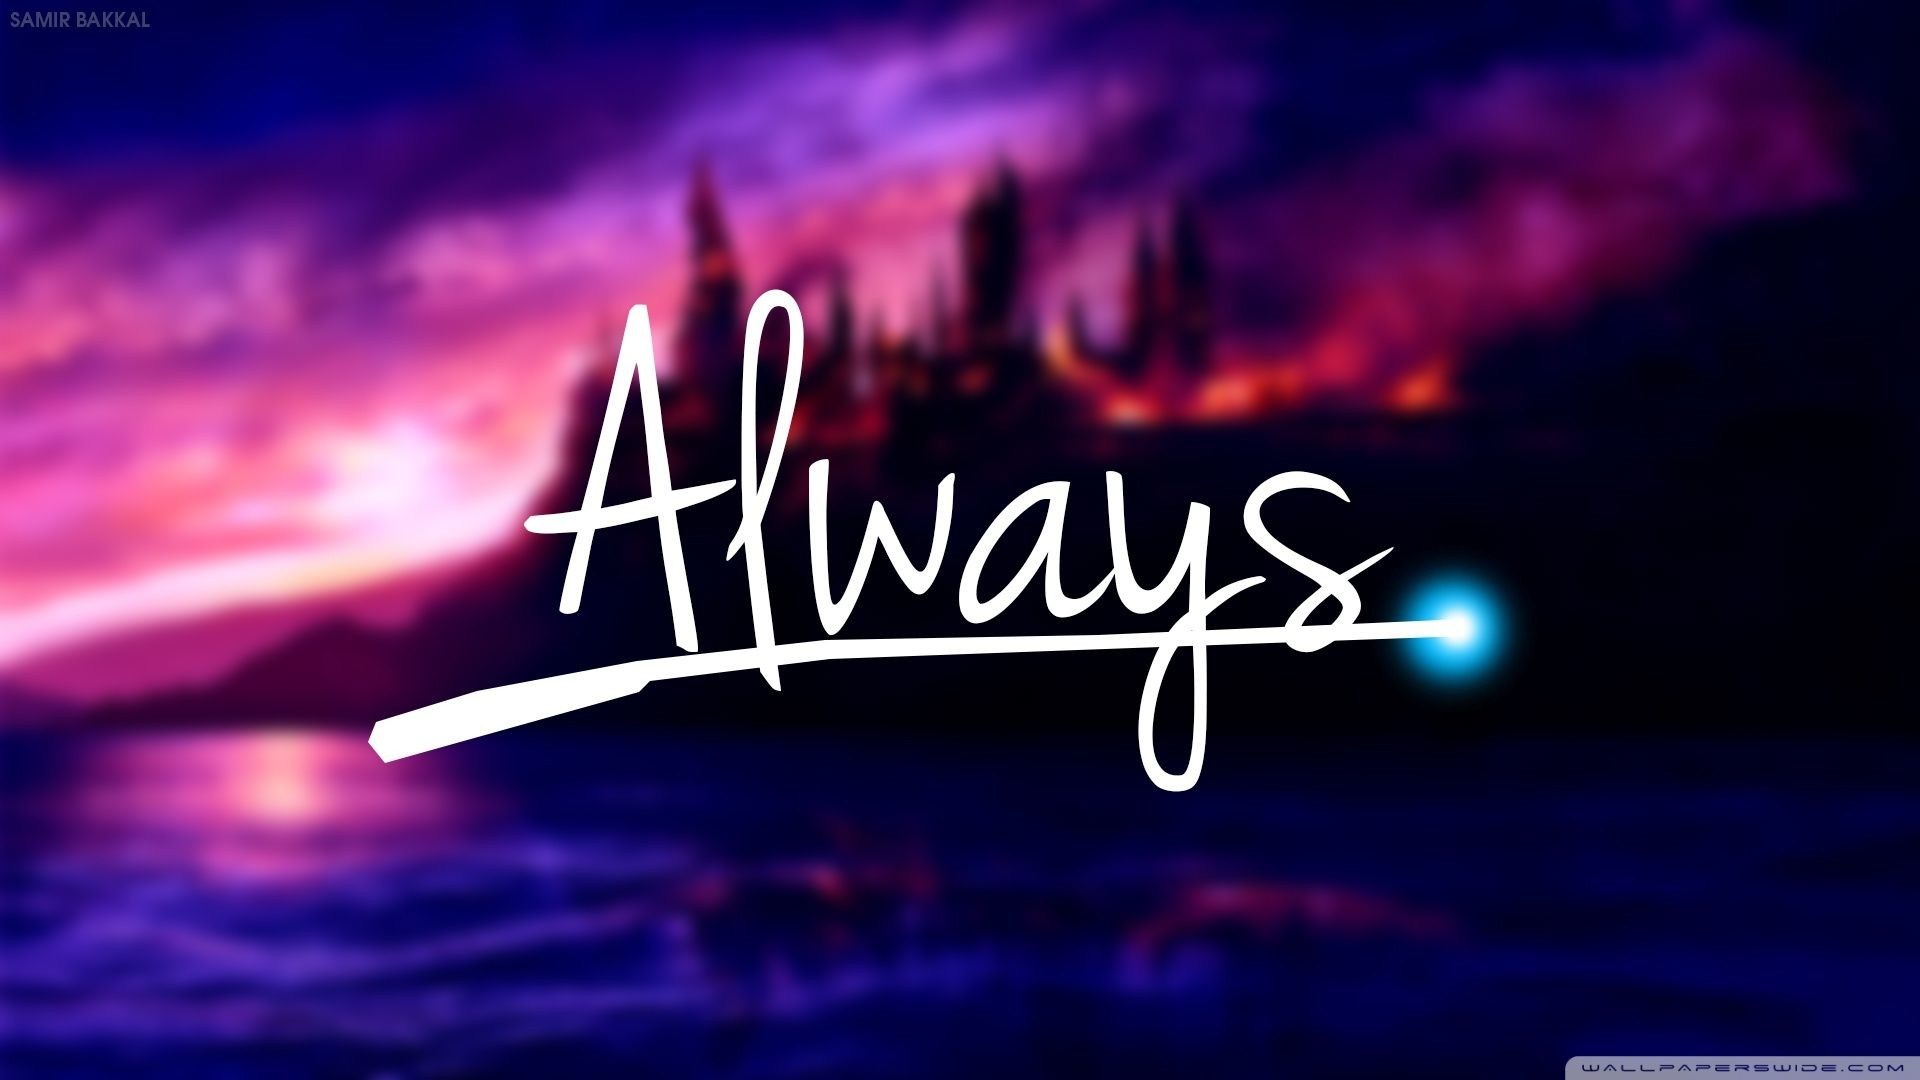 Res: 1920x1080, Always Harry Potter HD desktop wallpaper : High Definition : Mobile